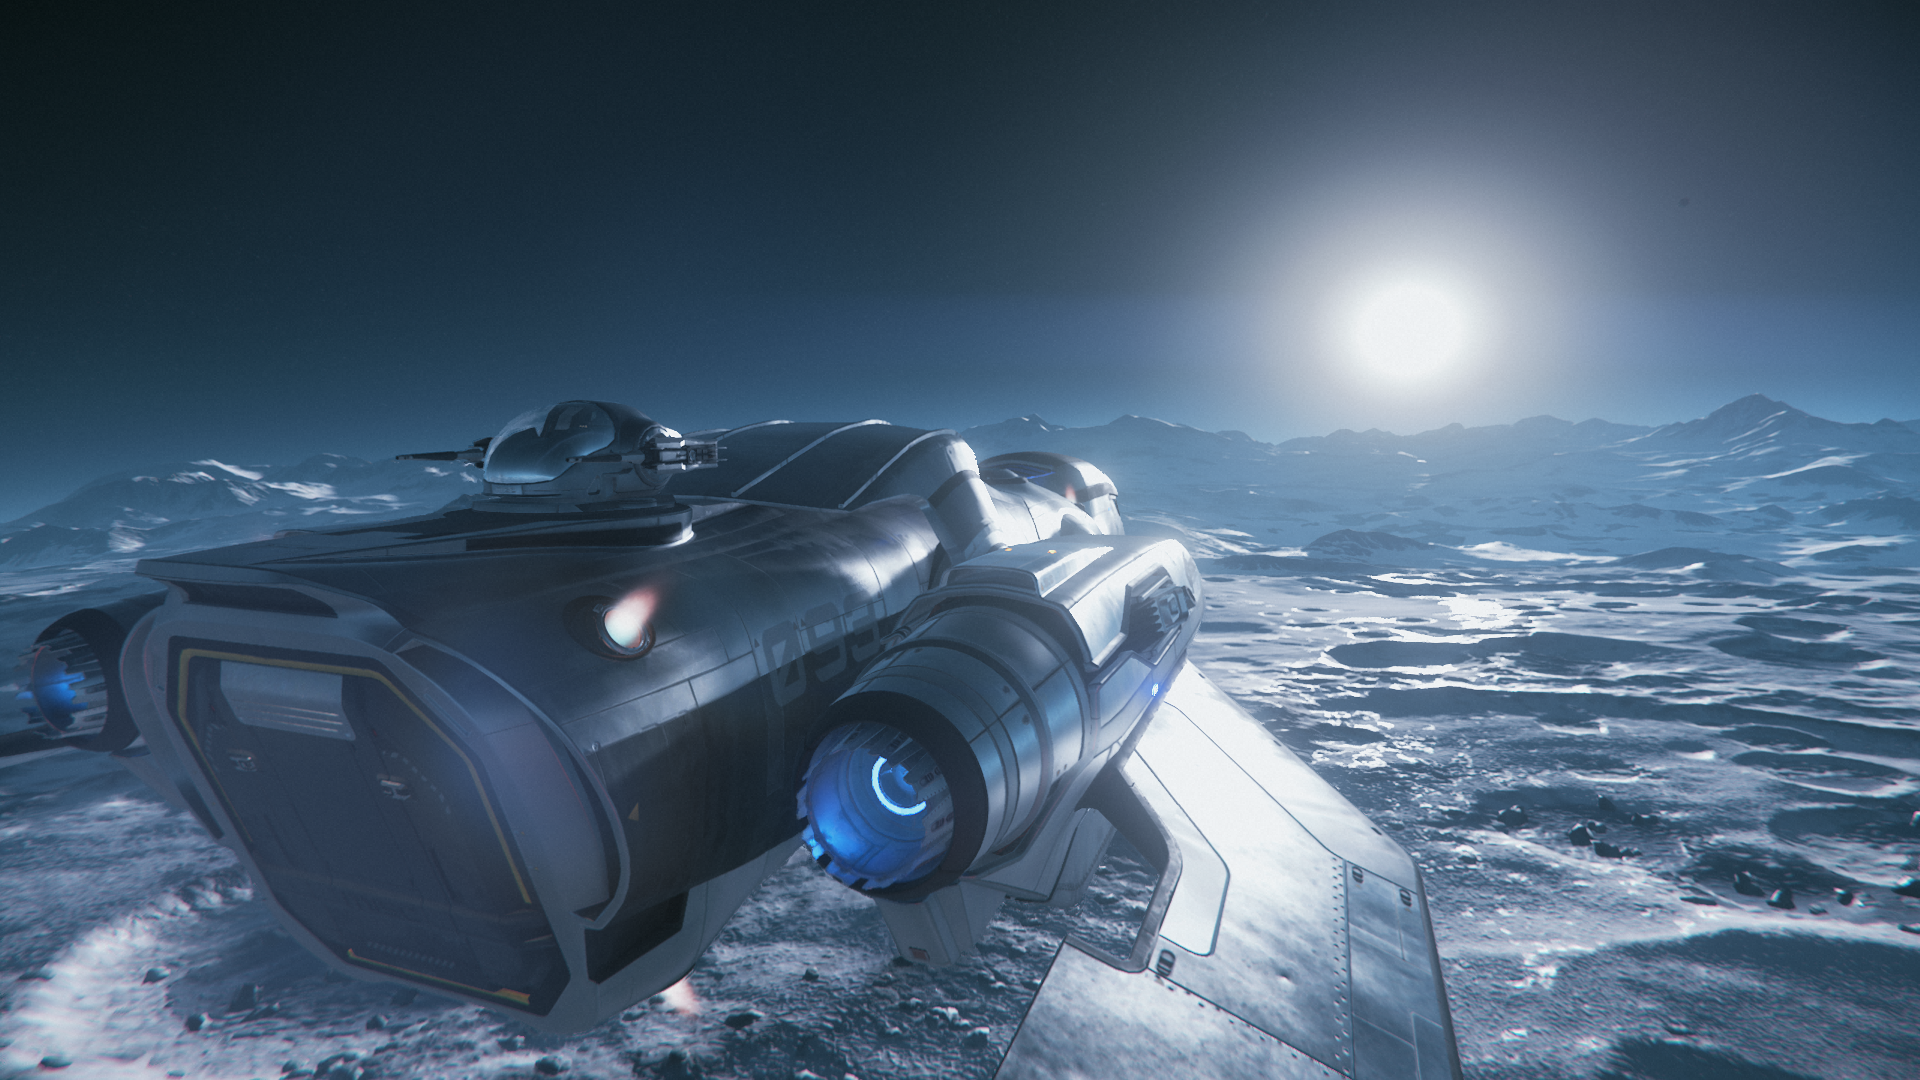 Squadron 42   star citizen screenshot 2019.12.20   01.33.54.47